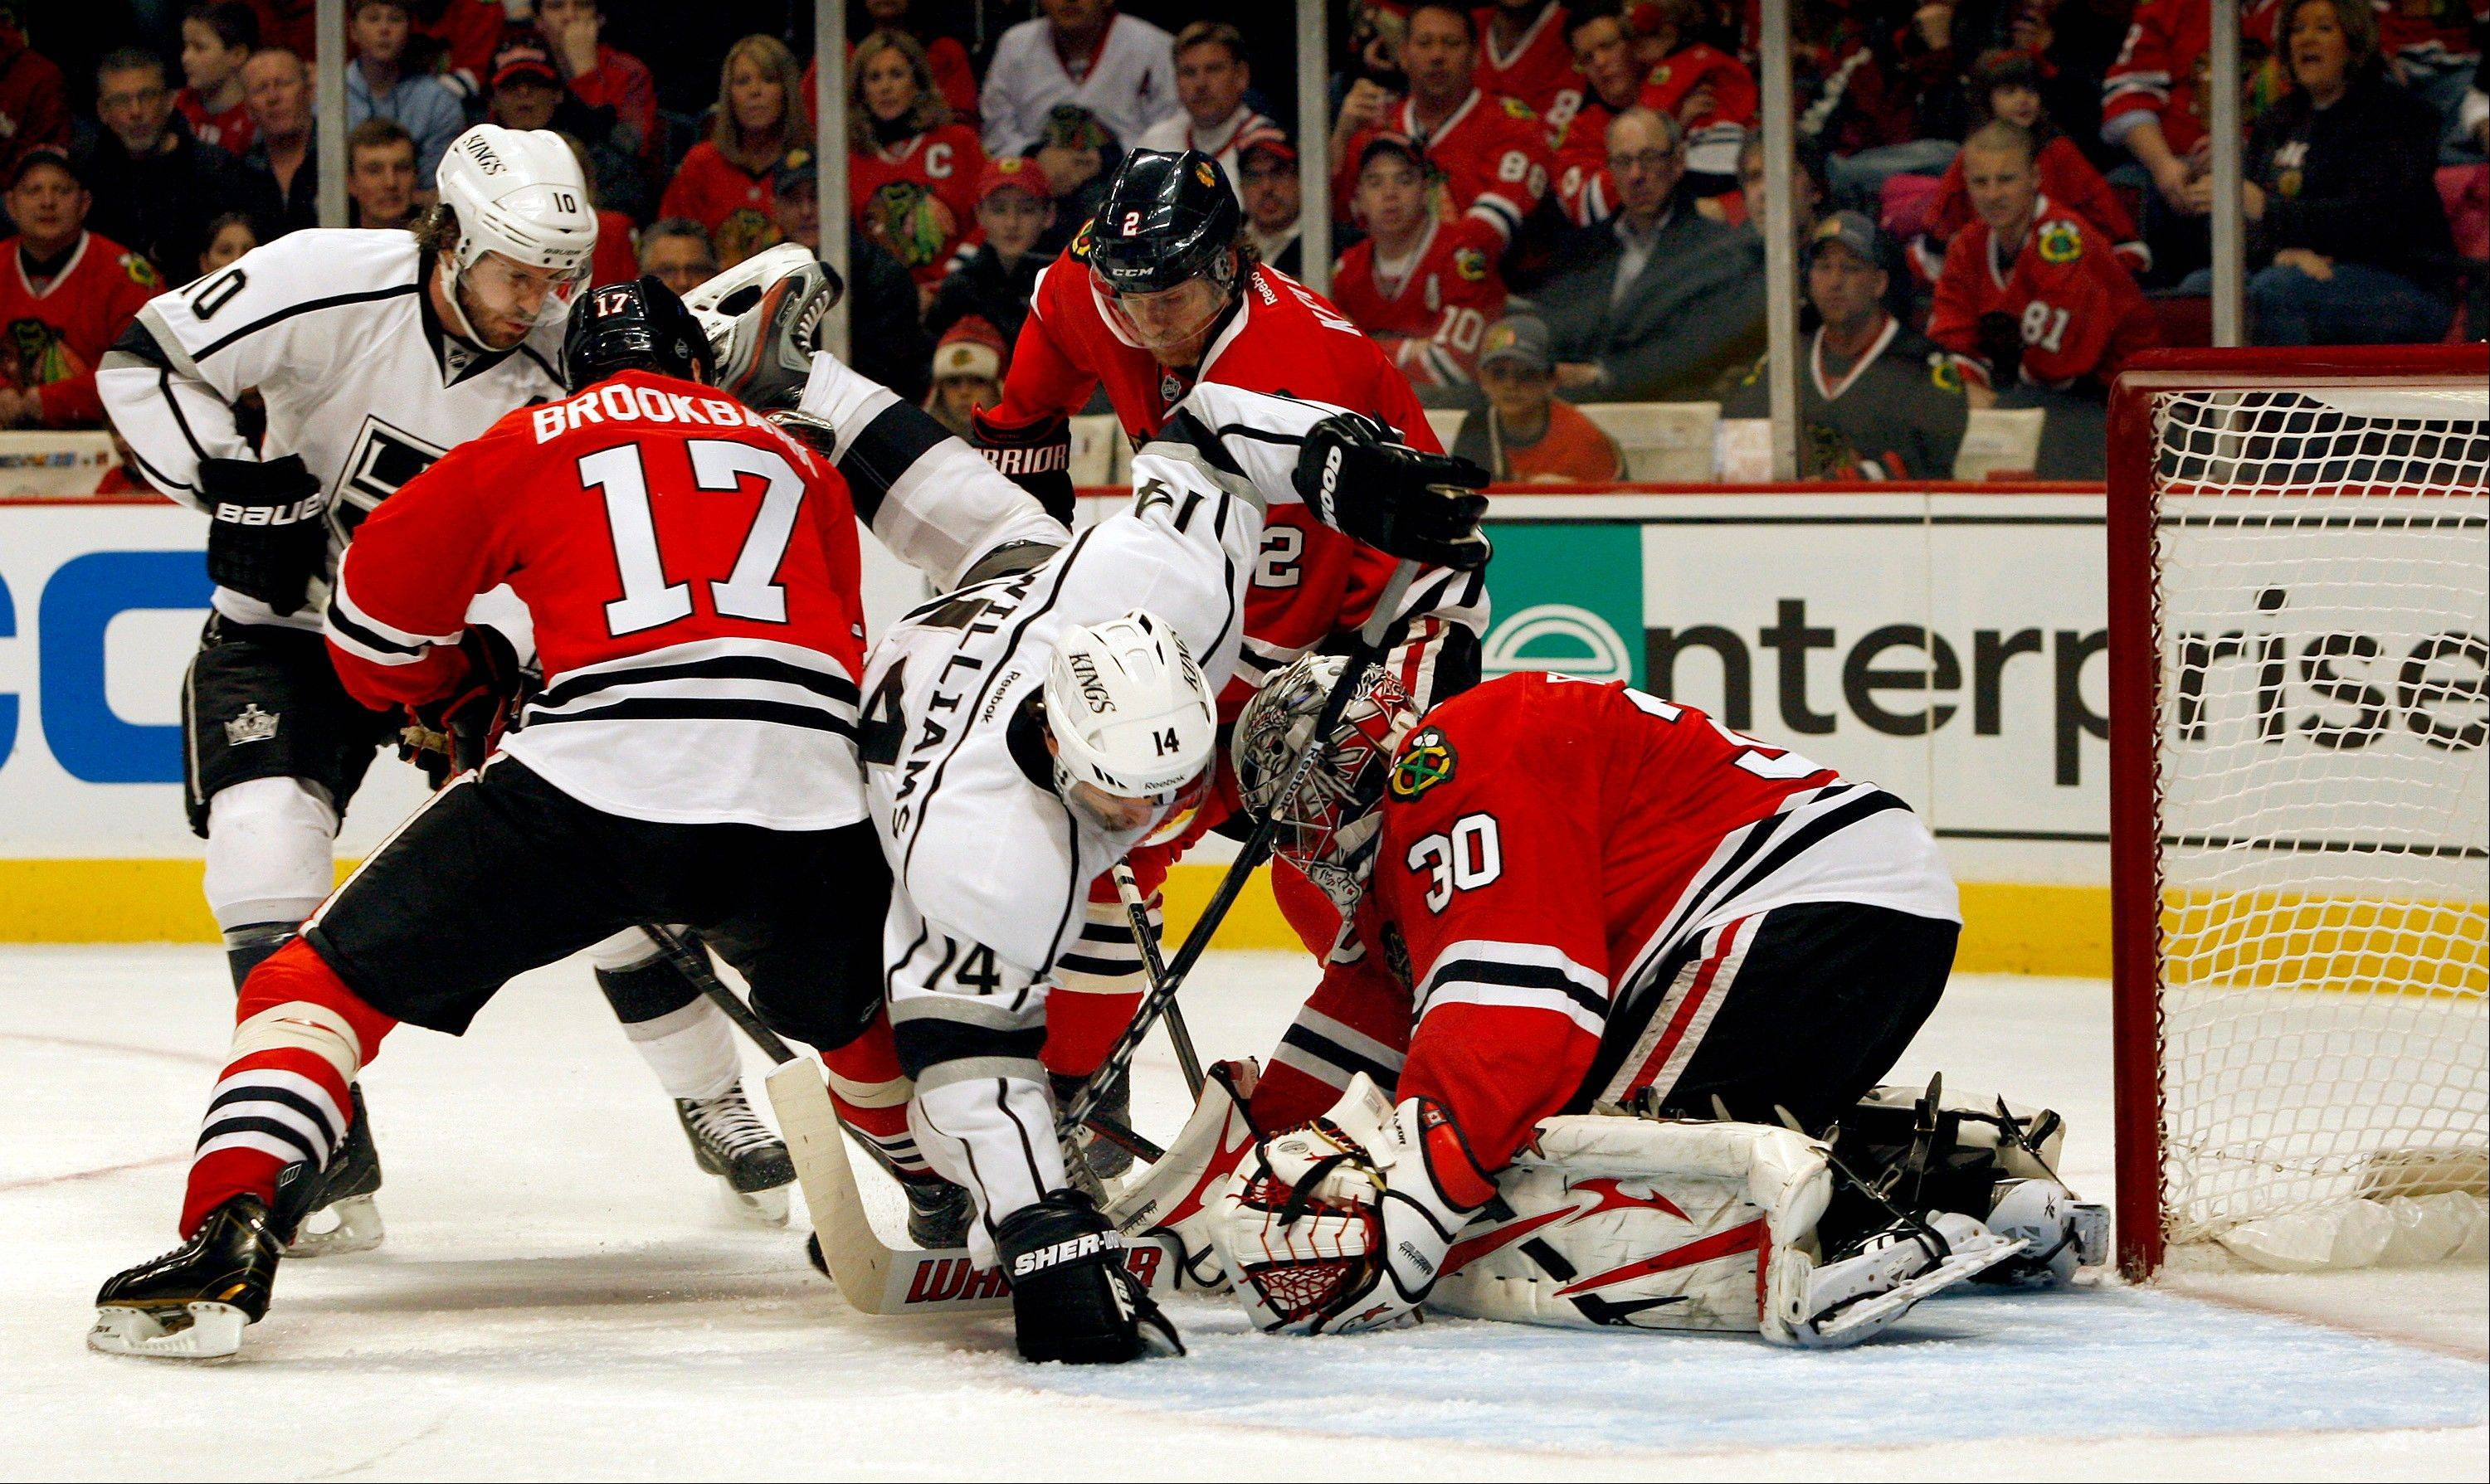 Blackhawks goalie Ray Emery stops the Kings' Justin Williams (14) in front of the goal in the first period of Sunday's victory over Los Angeles at the United Center.